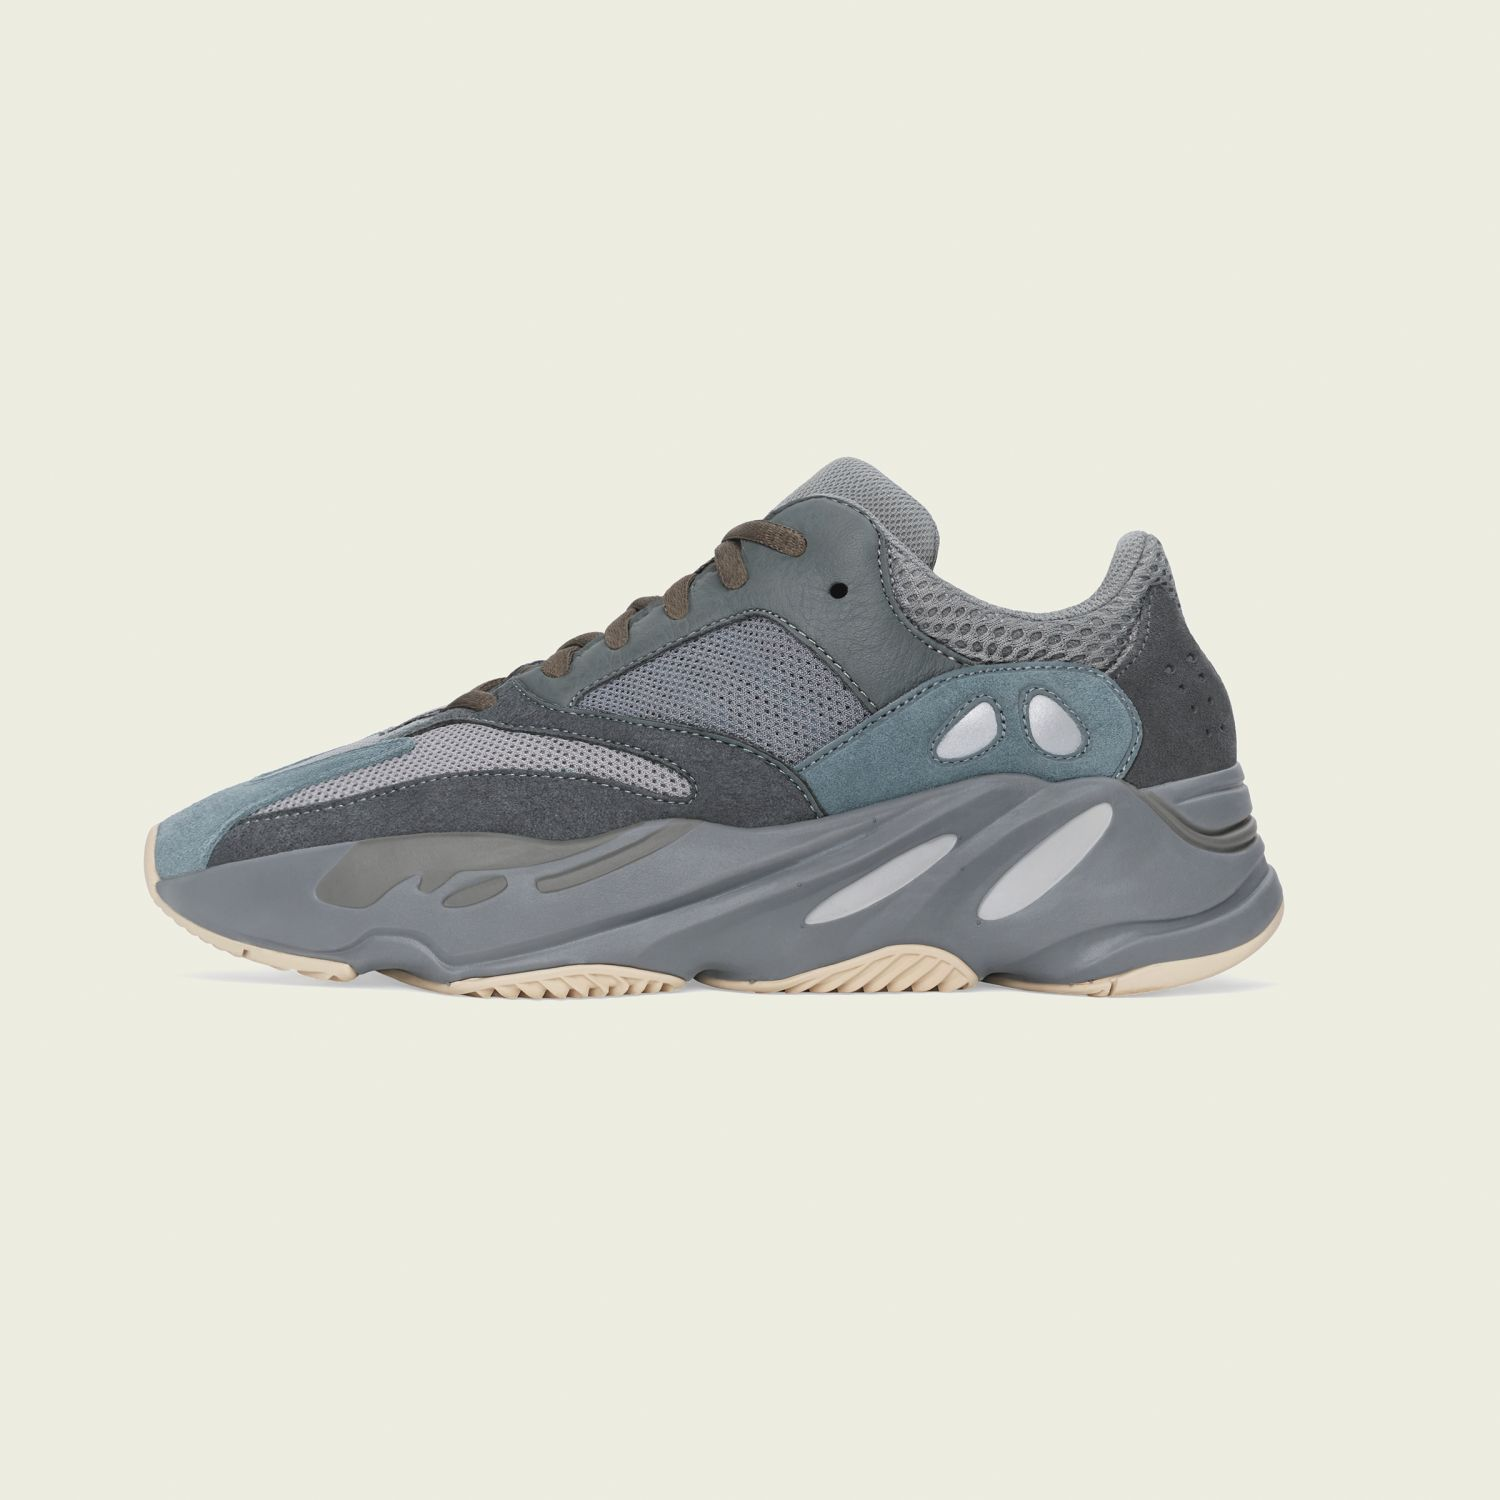 Yeezy Boost 700 Teal Blue [2]